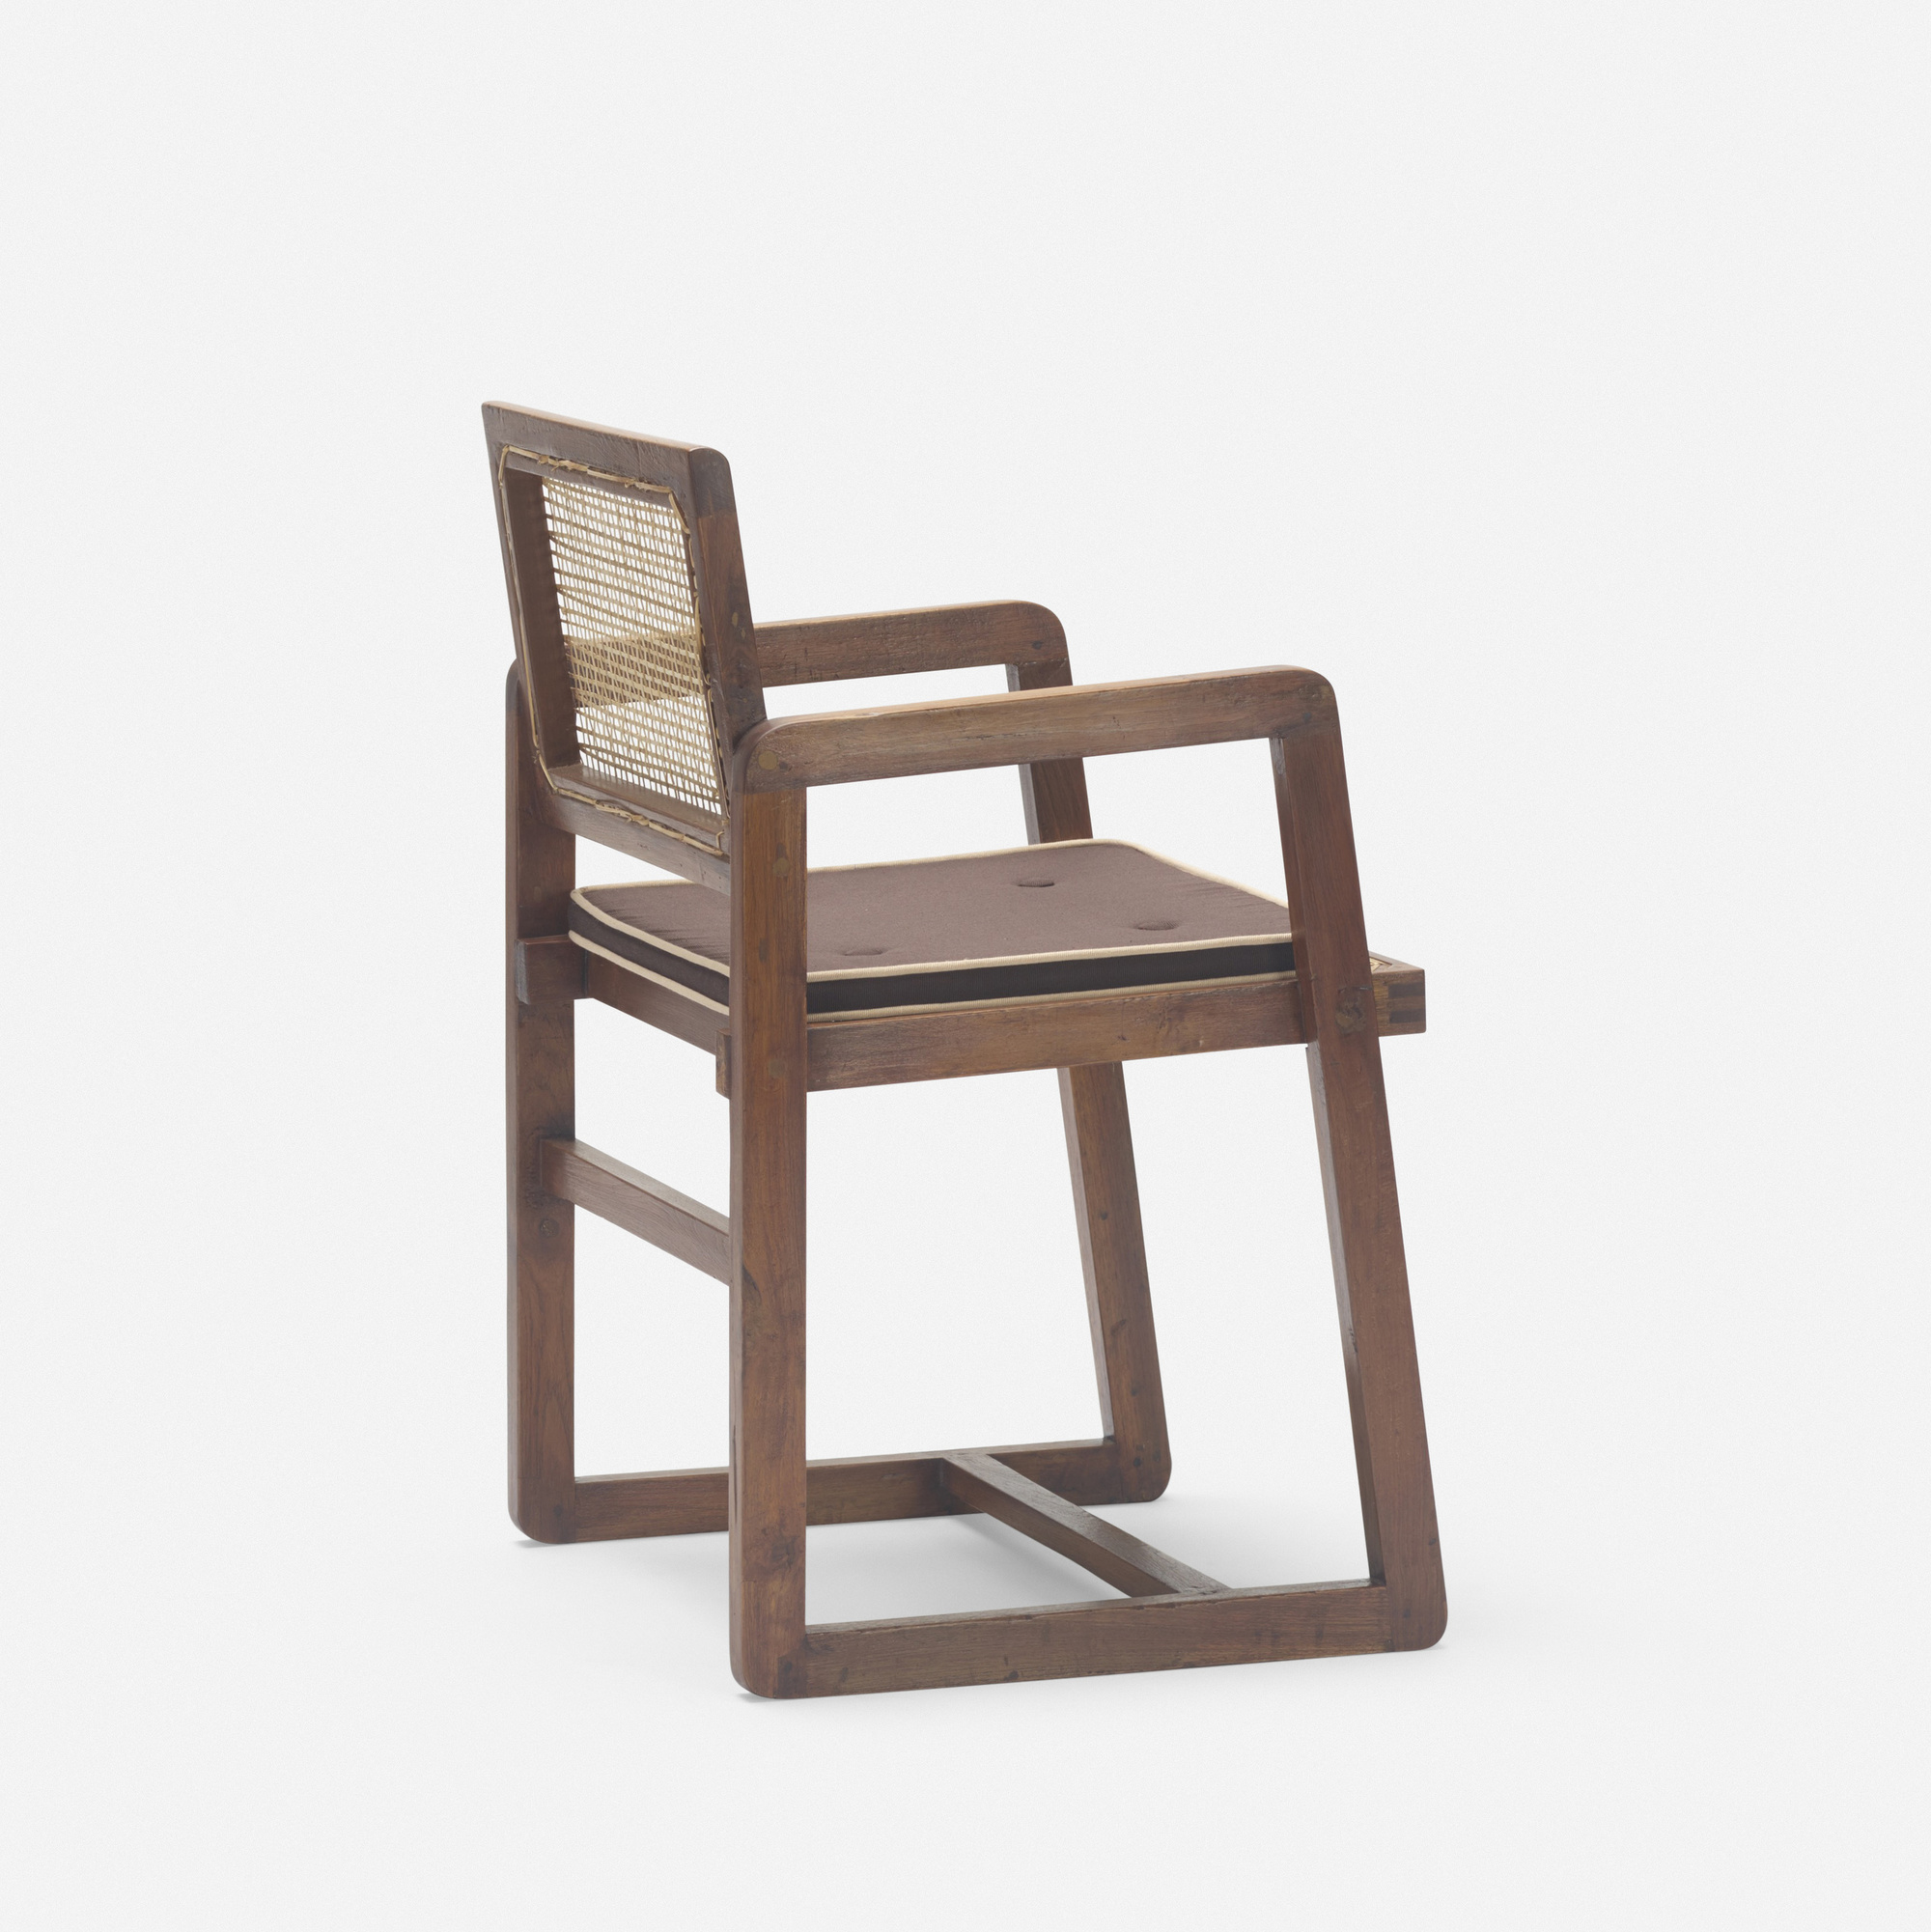 123: Pierre Jeanneret / armchair from Chandigarh (2 of 3)